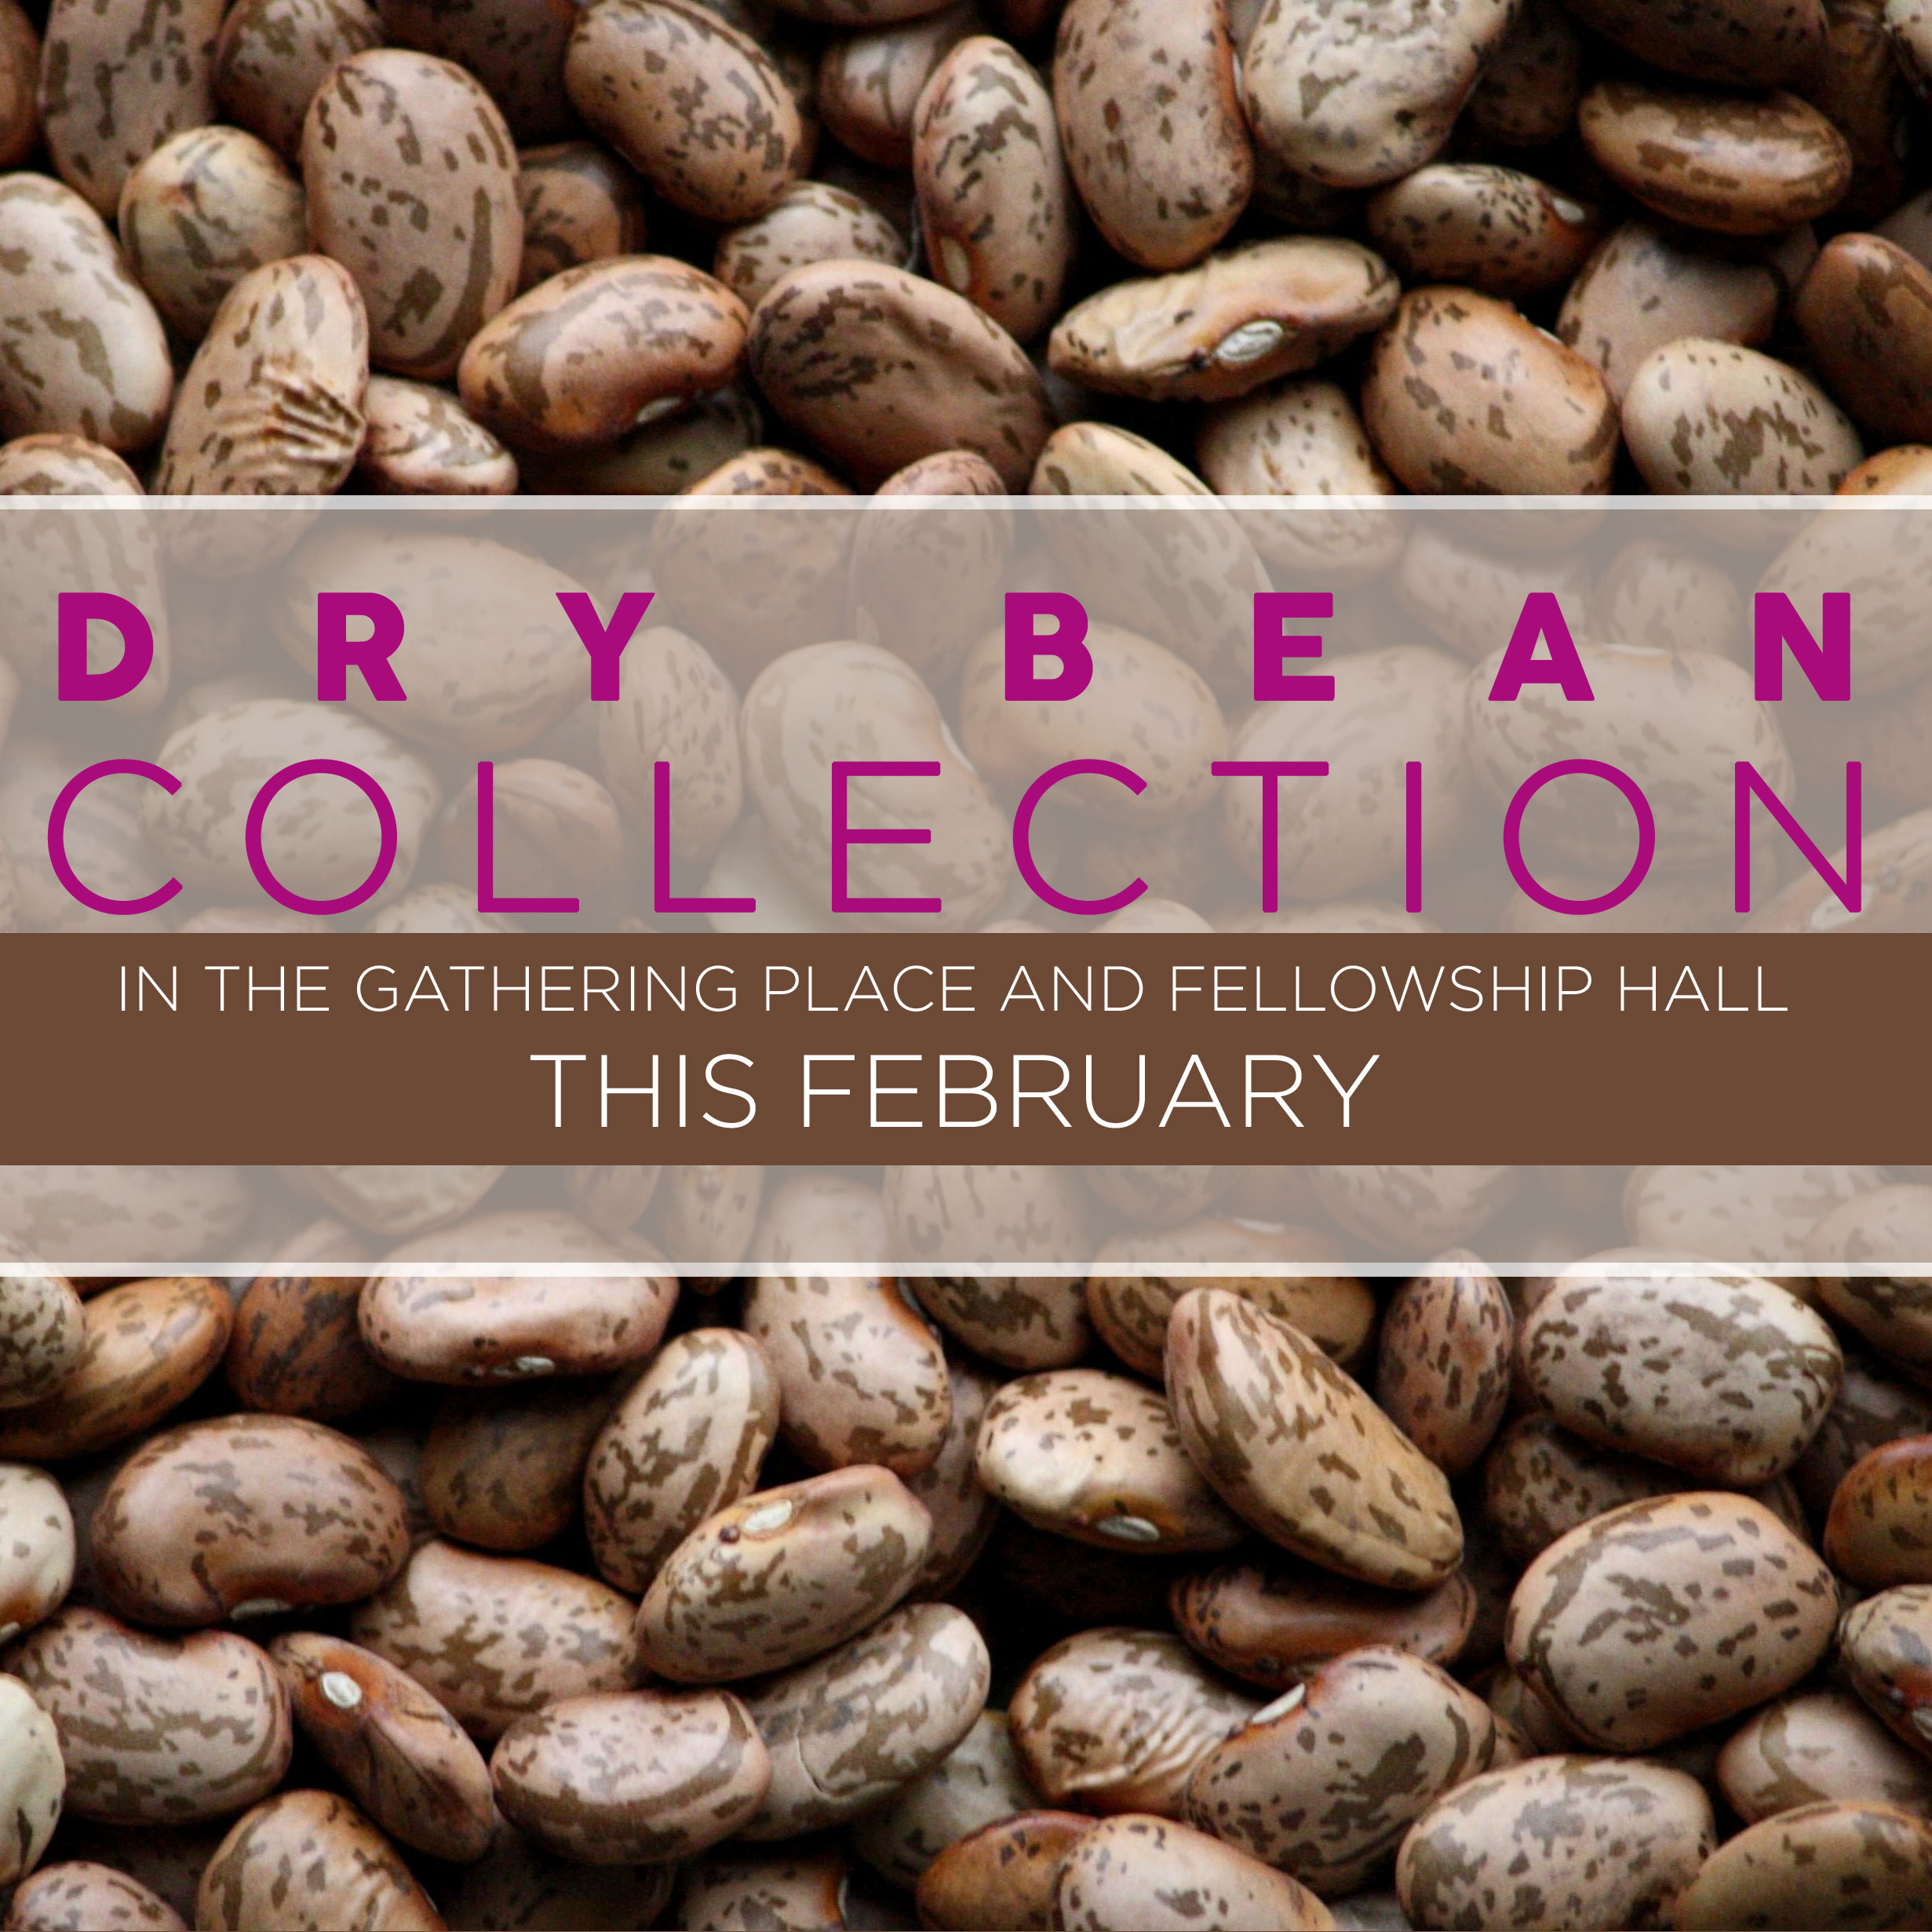 To help support the children of the Congo, who usually eat only every other day, we're going to be collecting dry beans to send to them throughout the month of February. Any type of dry beans is acceptable and you can bring your beans to the boxes that'll be set out in the Gathering Place and the Fellowship Hall. This collection is sponsored by Children's Essentials and Women on Mission.